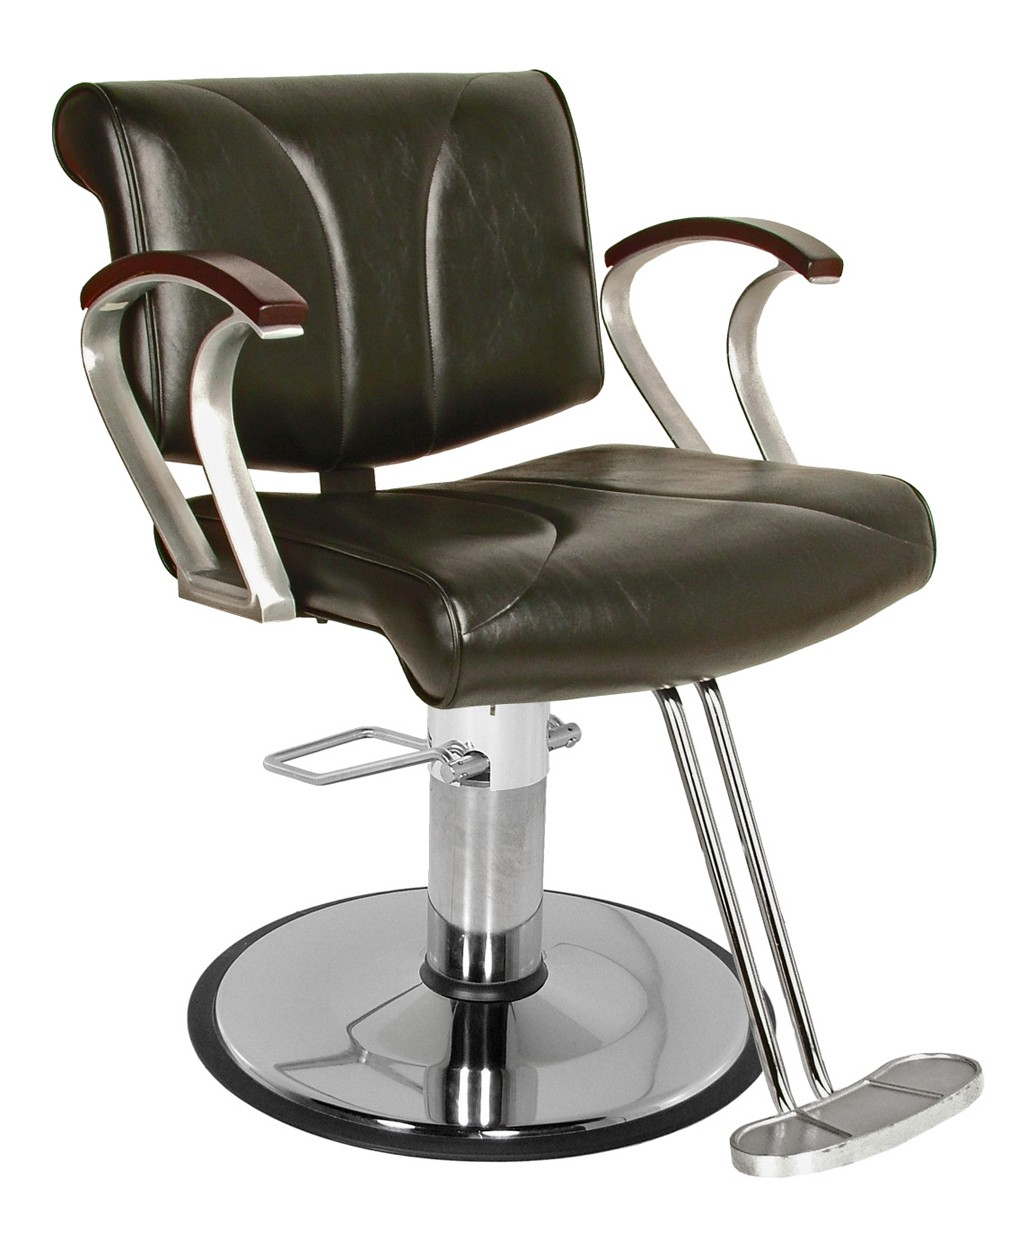 8101 Chelsea BA Styling Chair with Standard Base